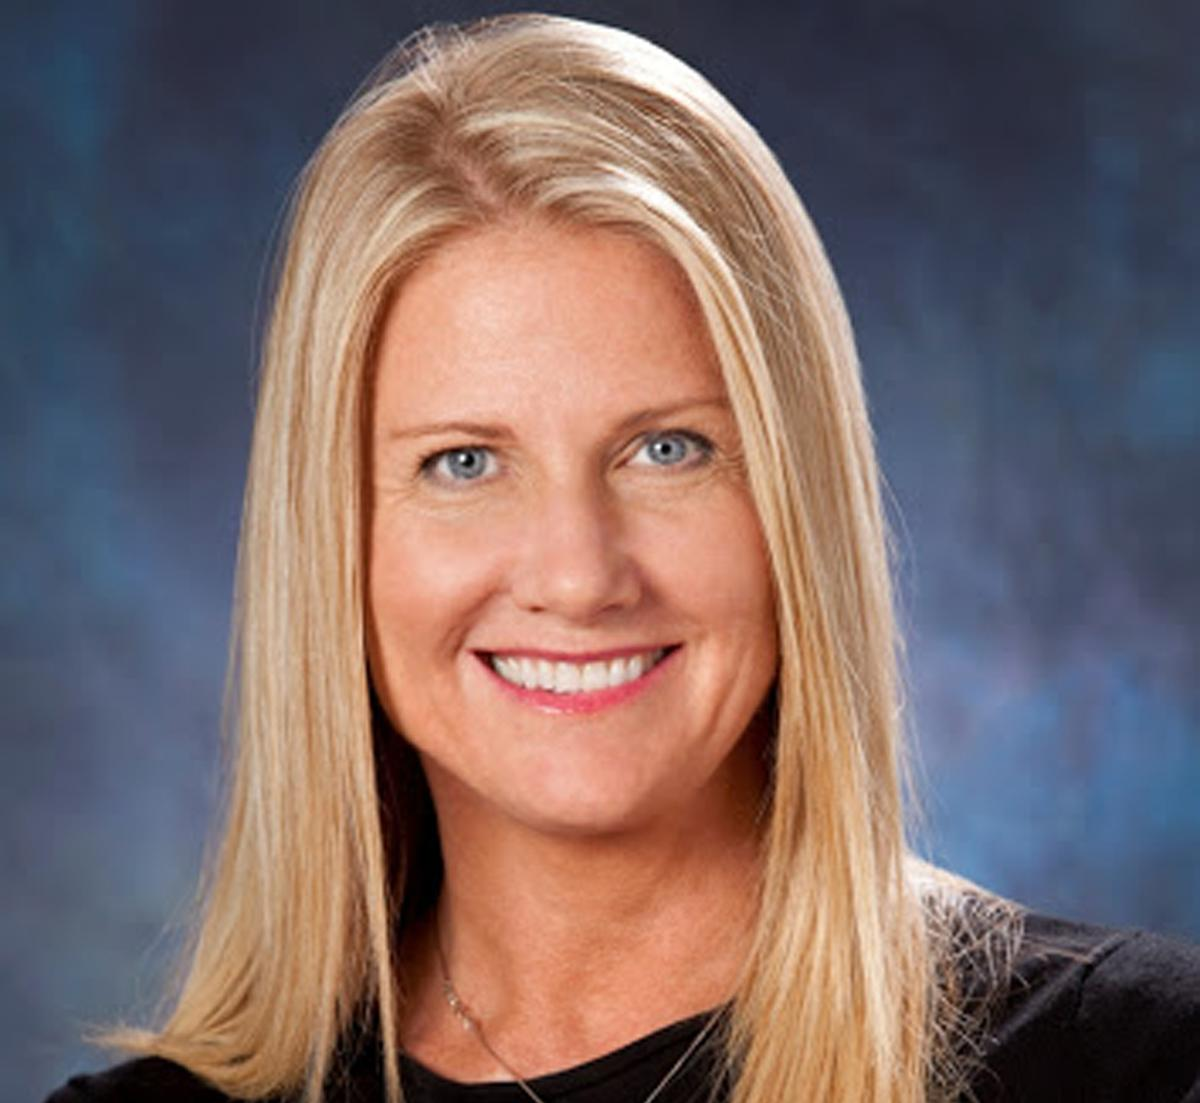 Susan Bonner began her career at KPMG Consulting and has over 20 years of experience in the cruise line sector